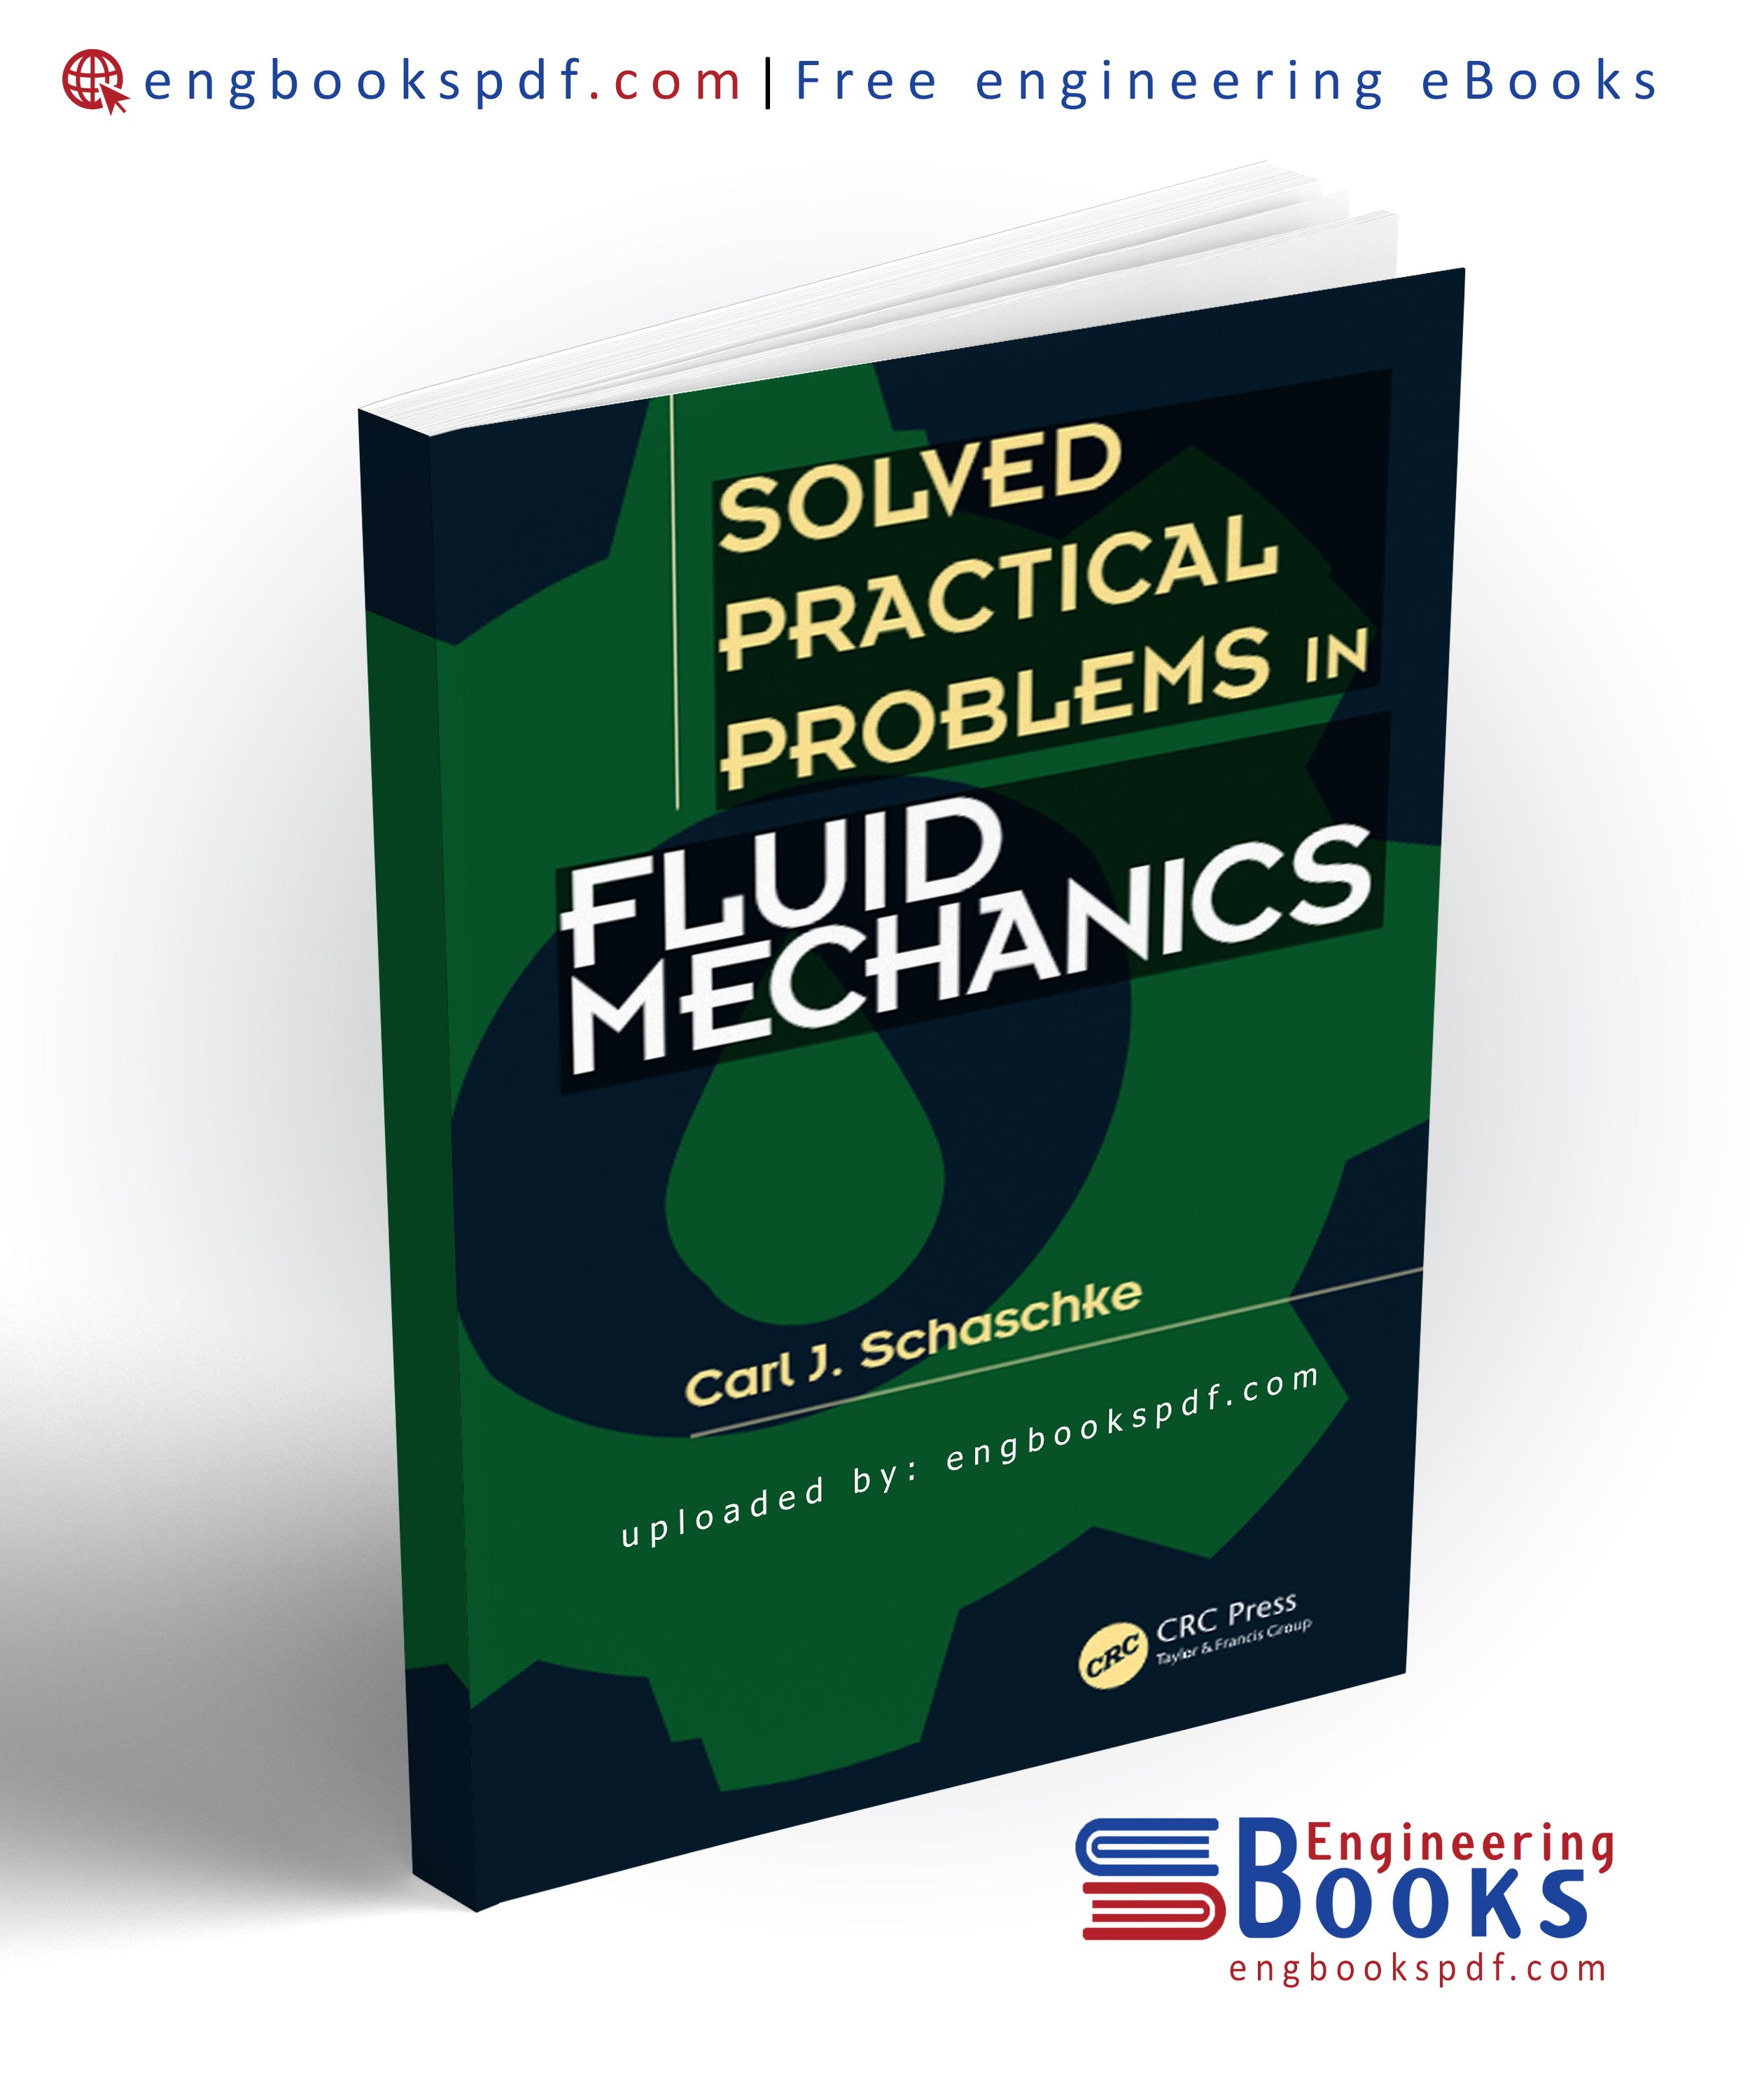 Download Pdf Of Solved Practical Problems In Fluid Mechanics For